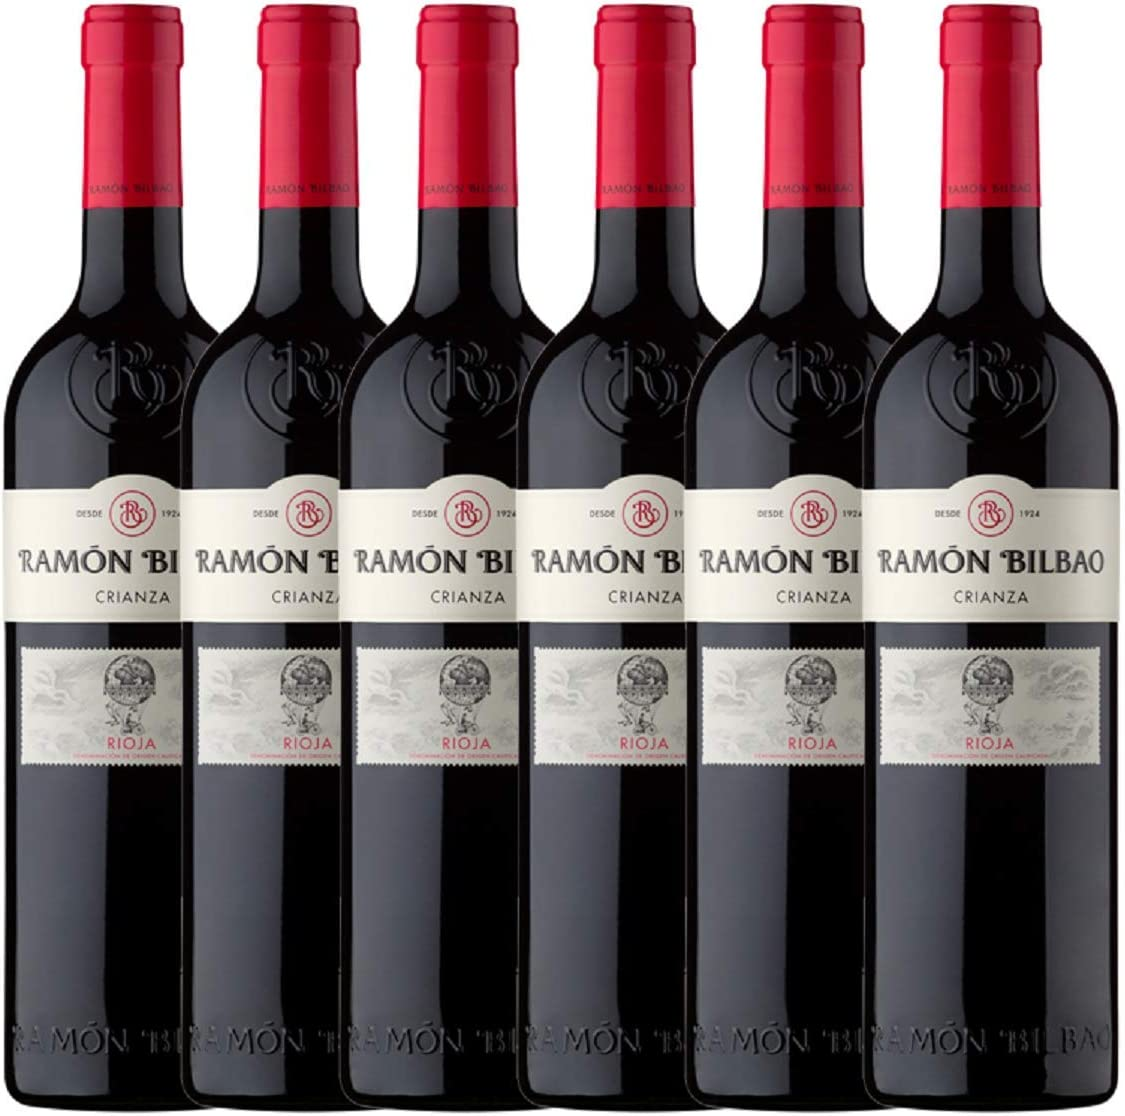 Ramón Bilbao Crianza - 6 botellas 750 ml